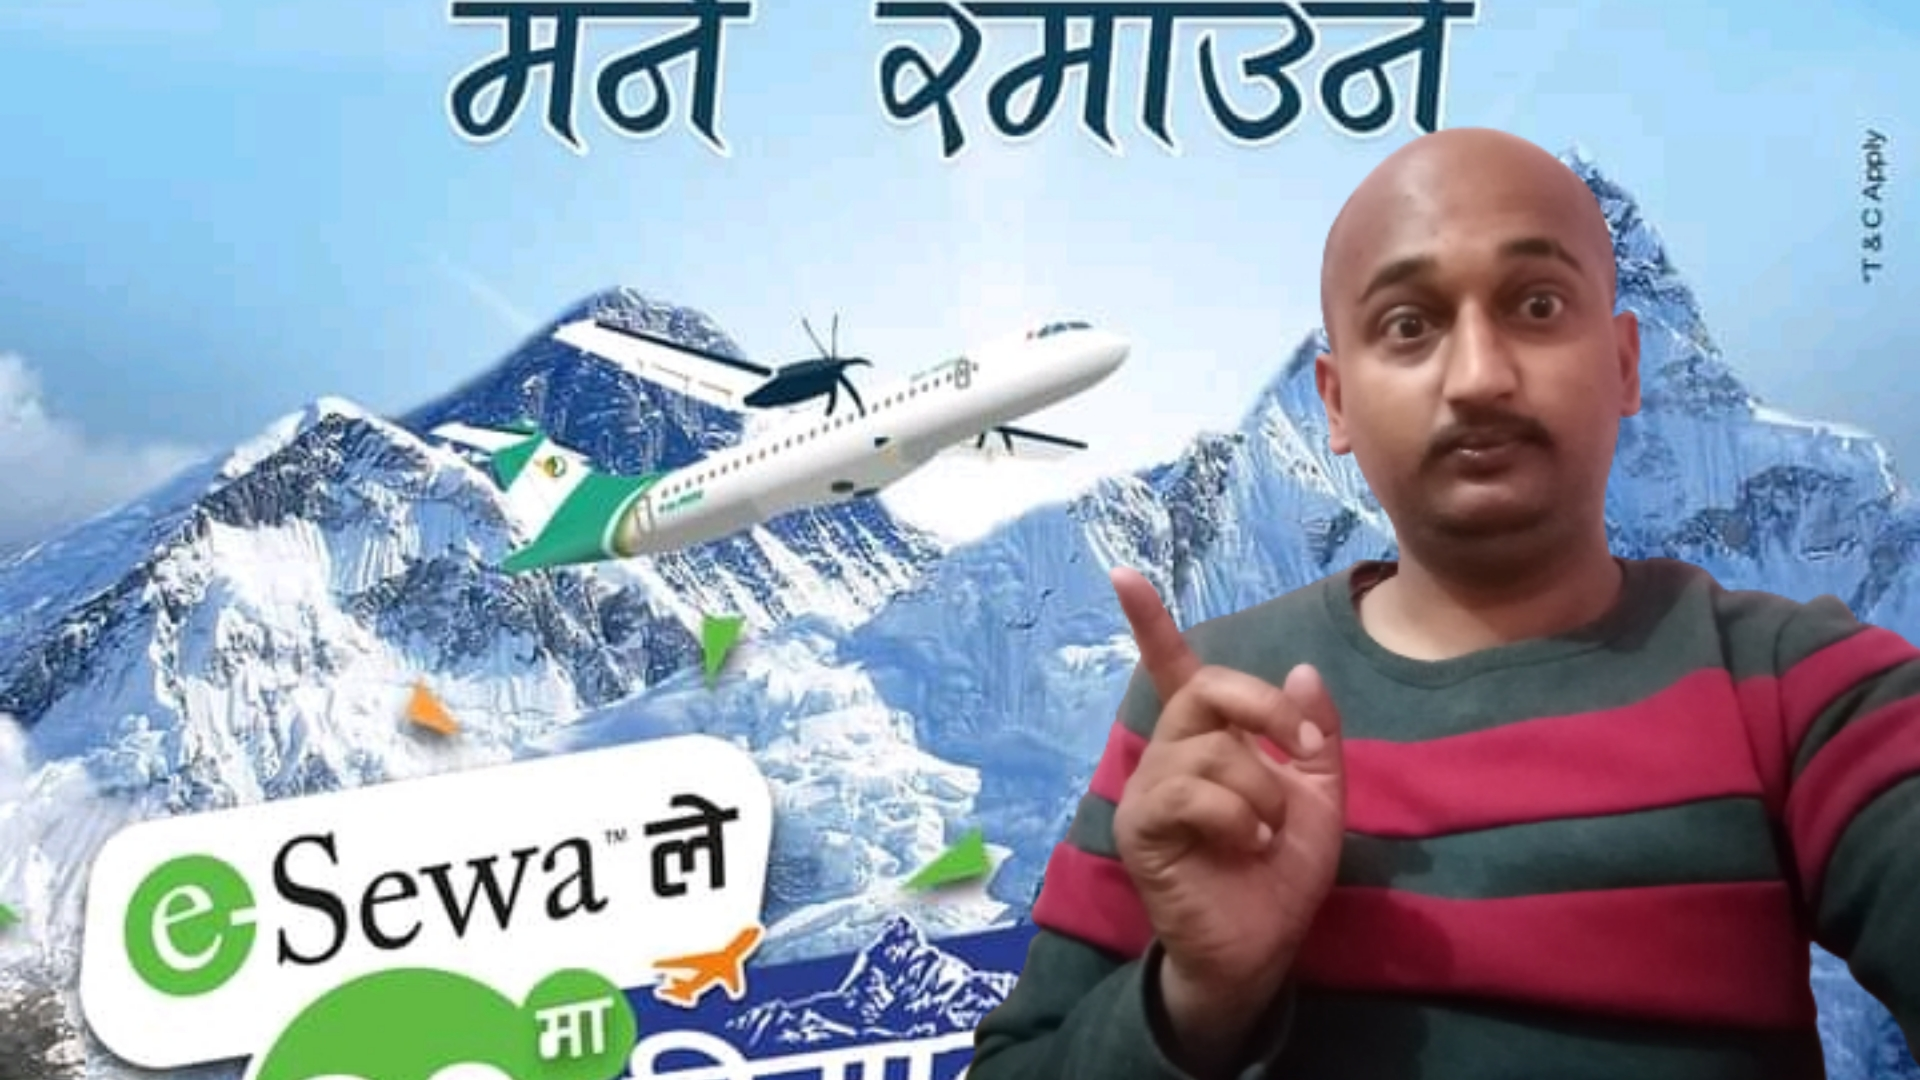 How to join Rs. 20 ma Himal Ghumaune Offer in eSewa